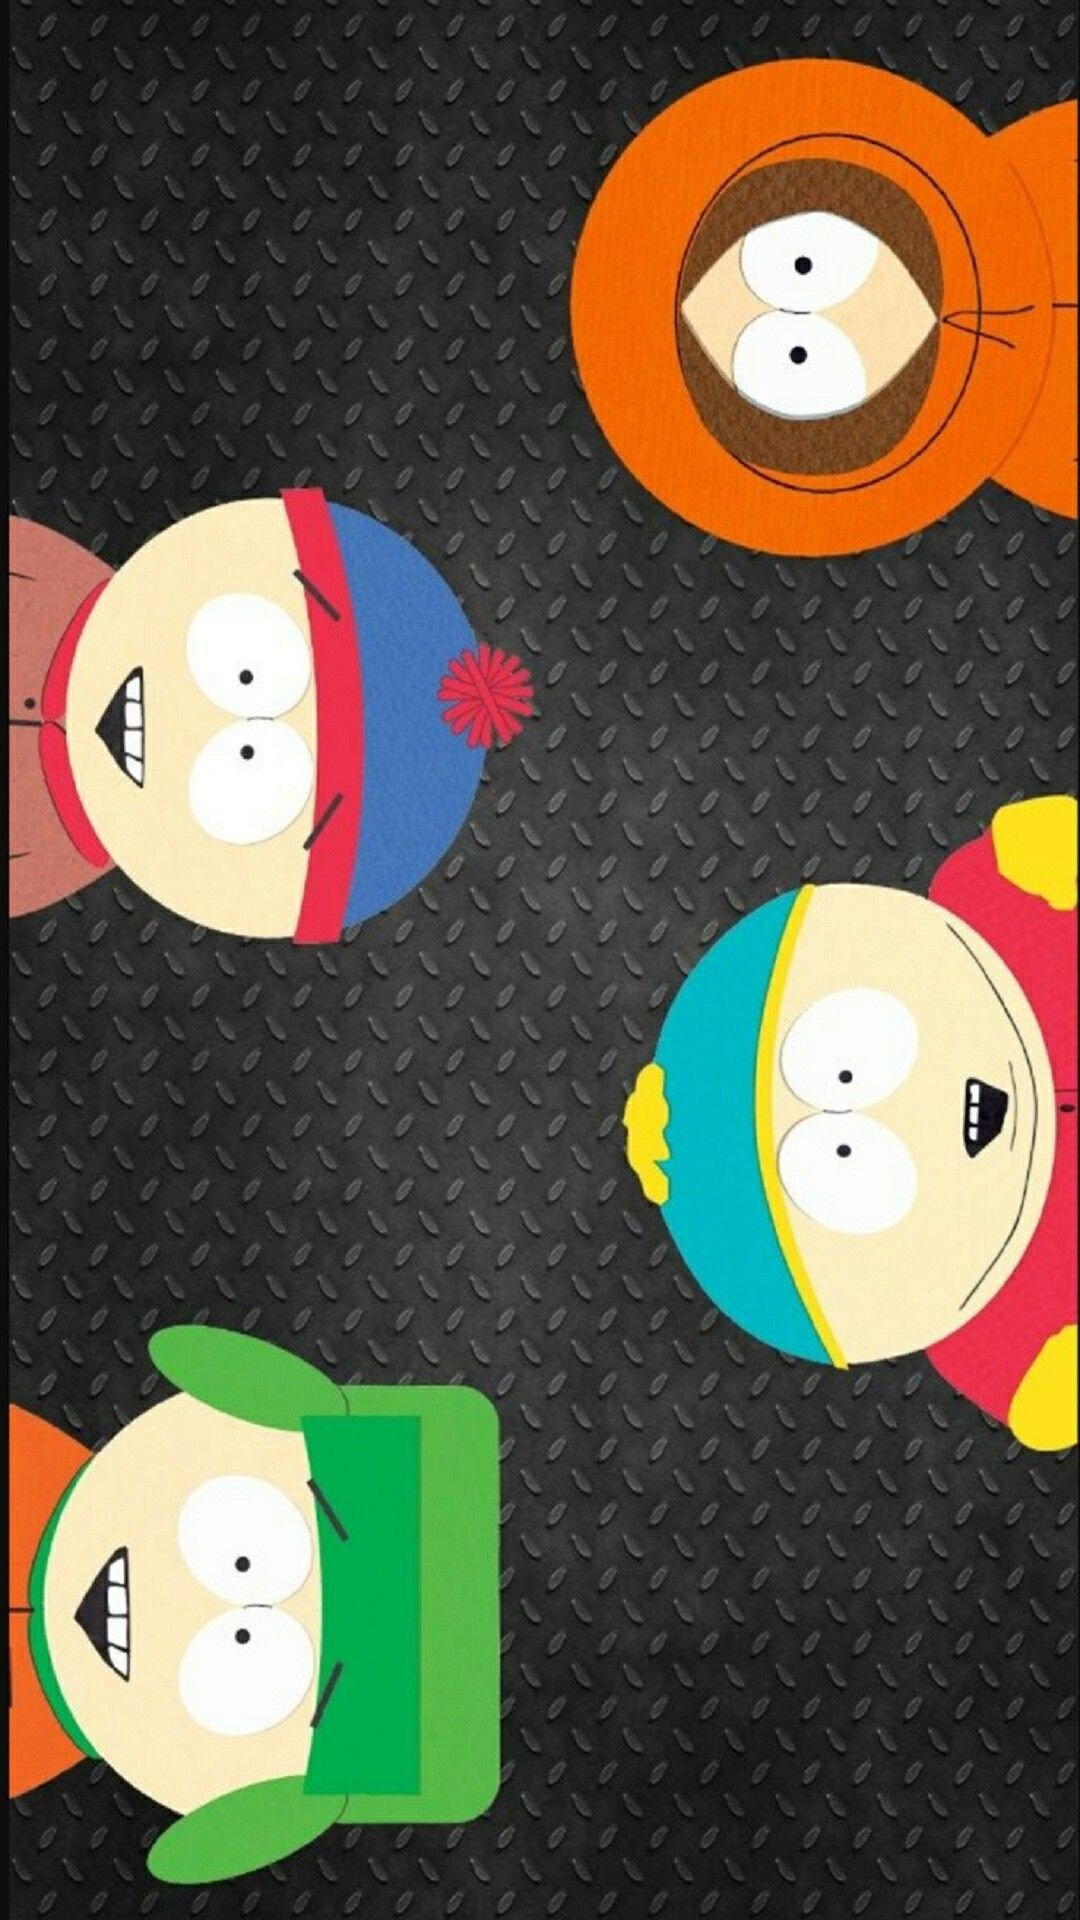 1080x1920 Best Of South Park, South Park Anime, South Park Characters, Ipod Wallpaper,